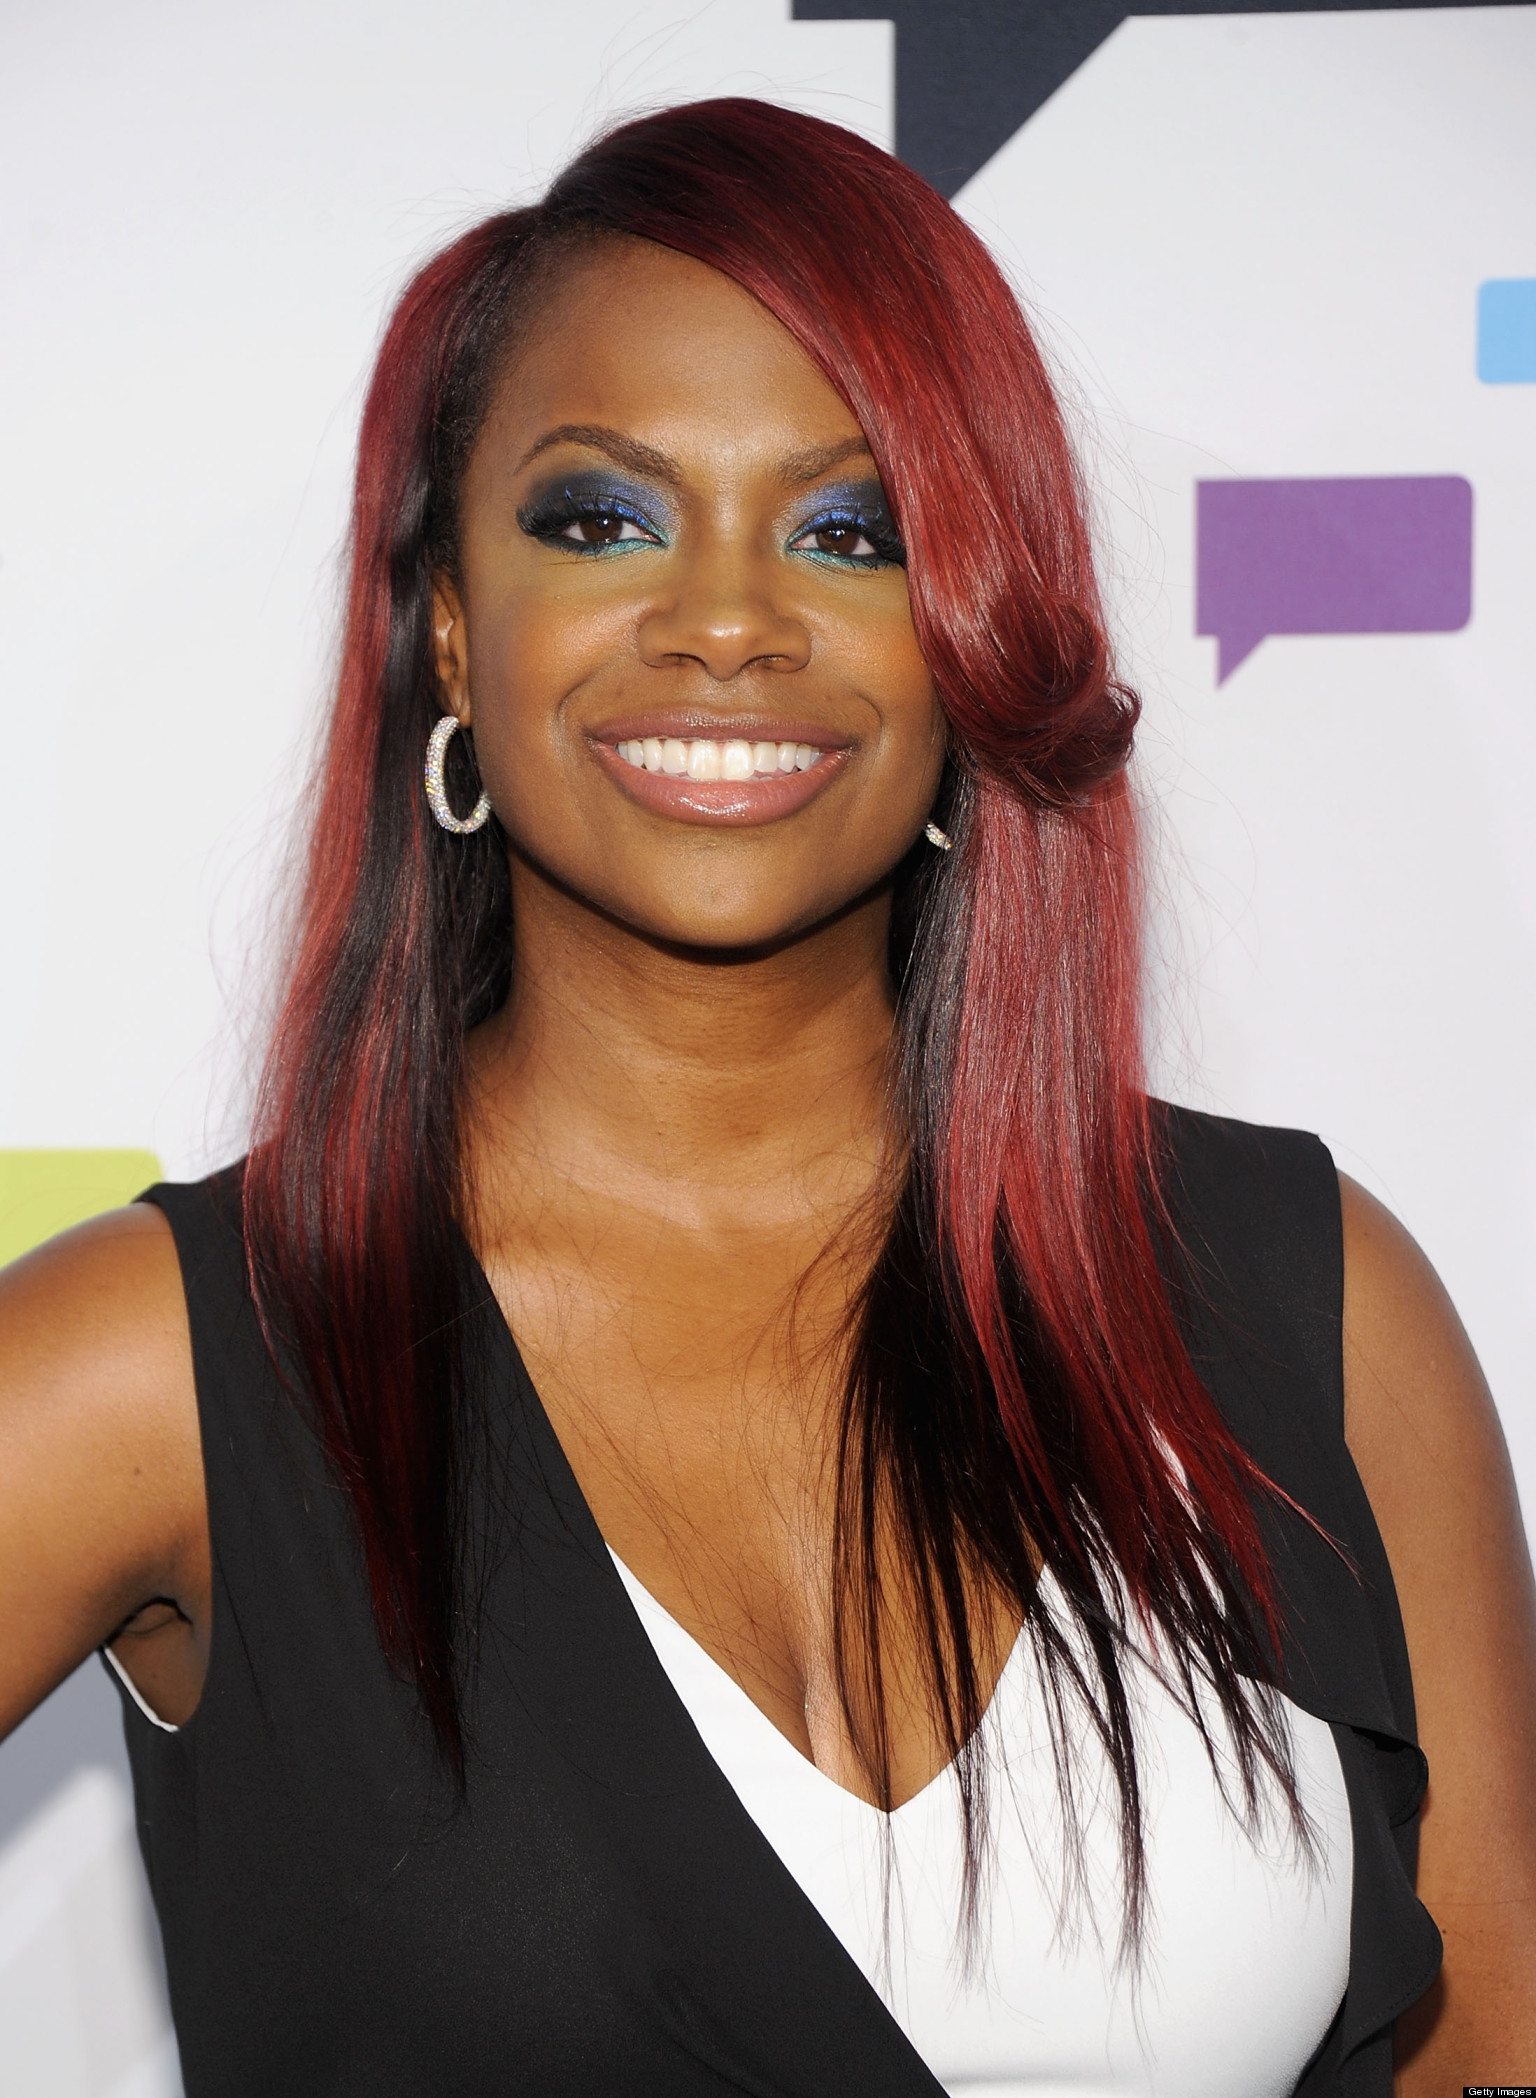 Kandi Burruss Addresses Pre-'Housewives' Haters, Making